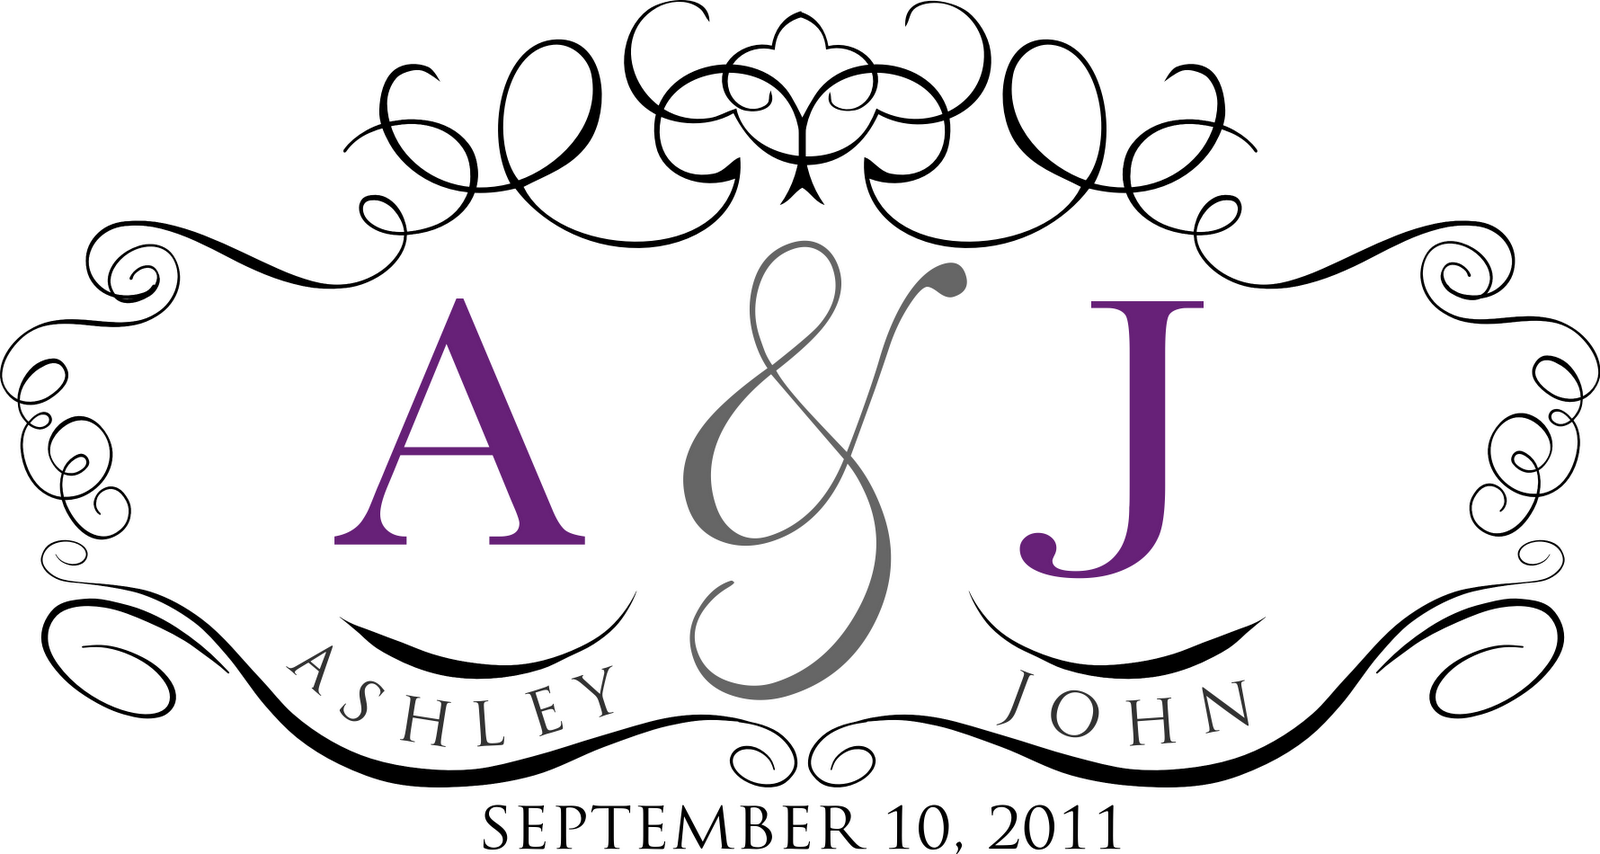 wedding monogram free template - 28 images - 7 best images of free ...